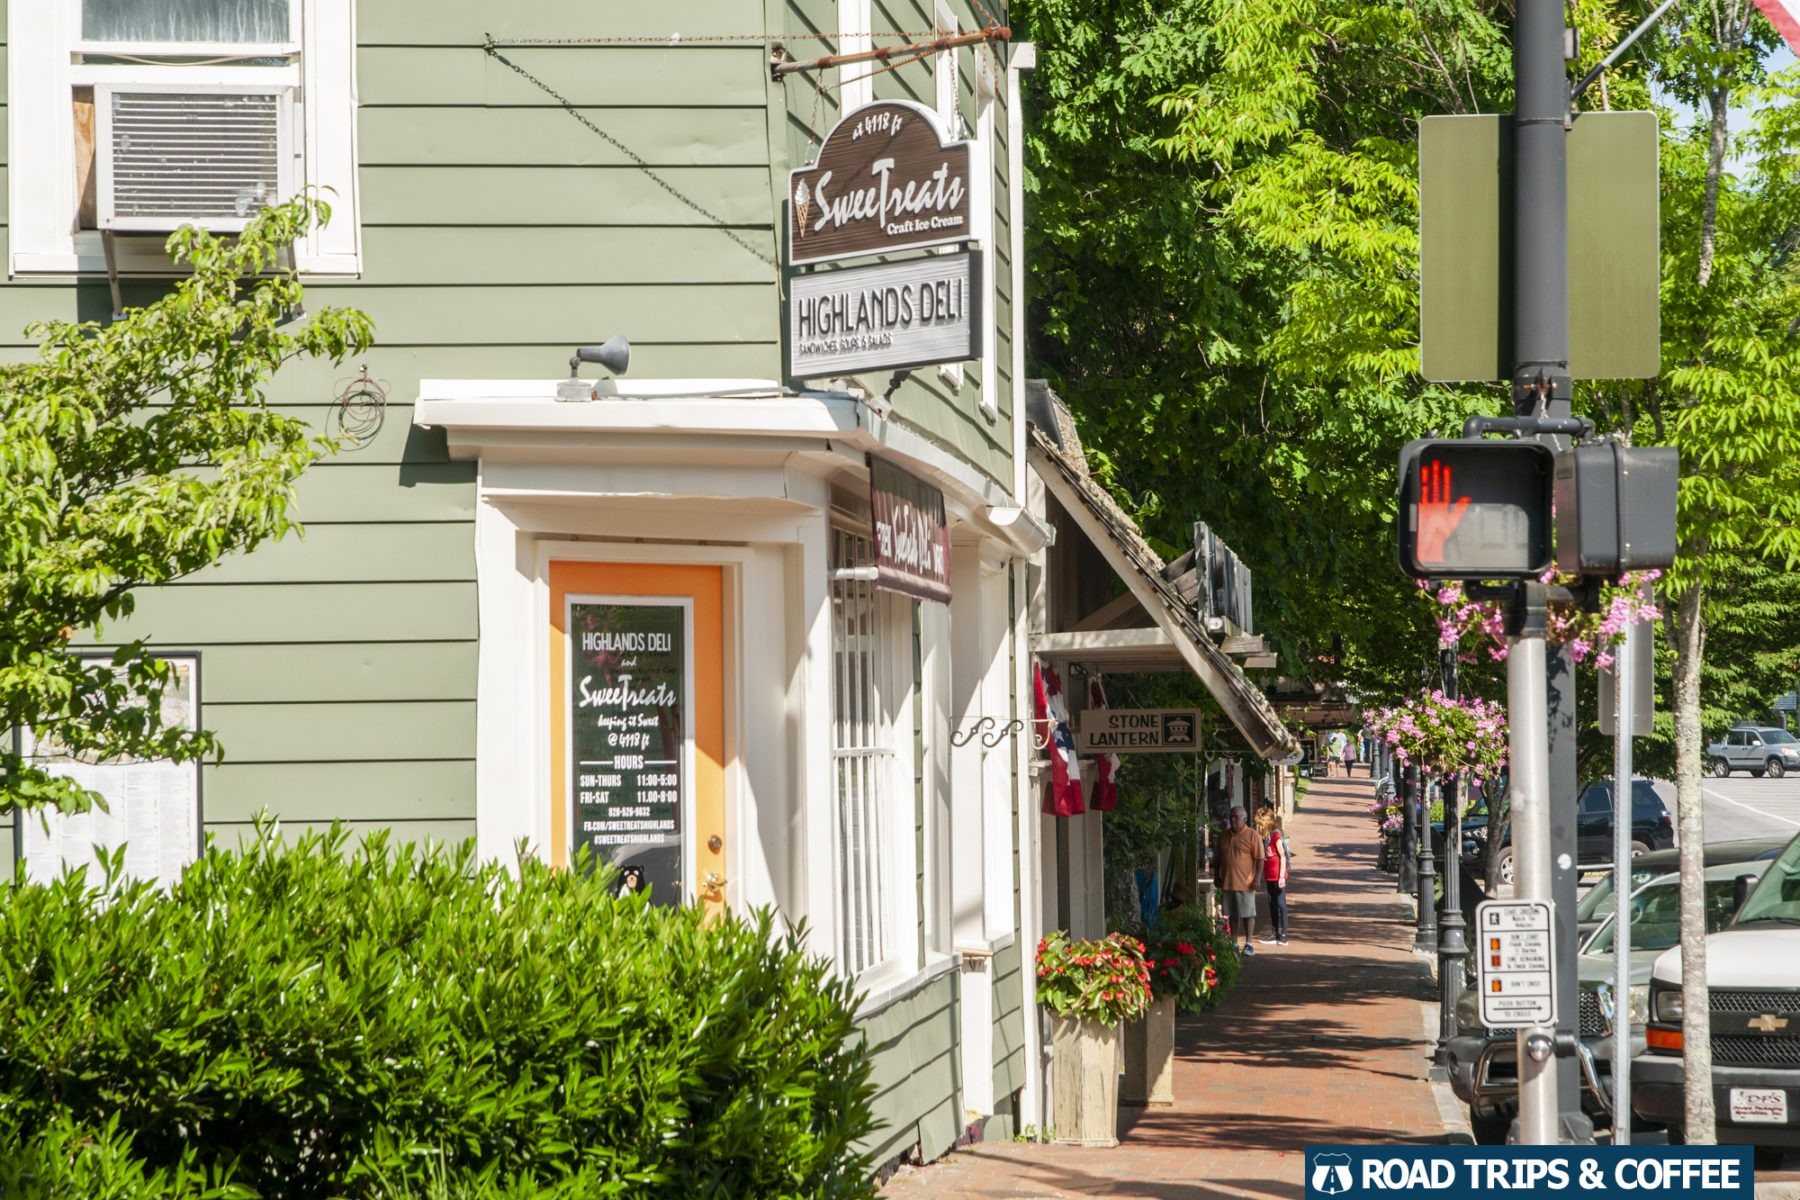 A brick sidewalk stretches along Main Street past several small shops in downtonw Highlands, North Carolina